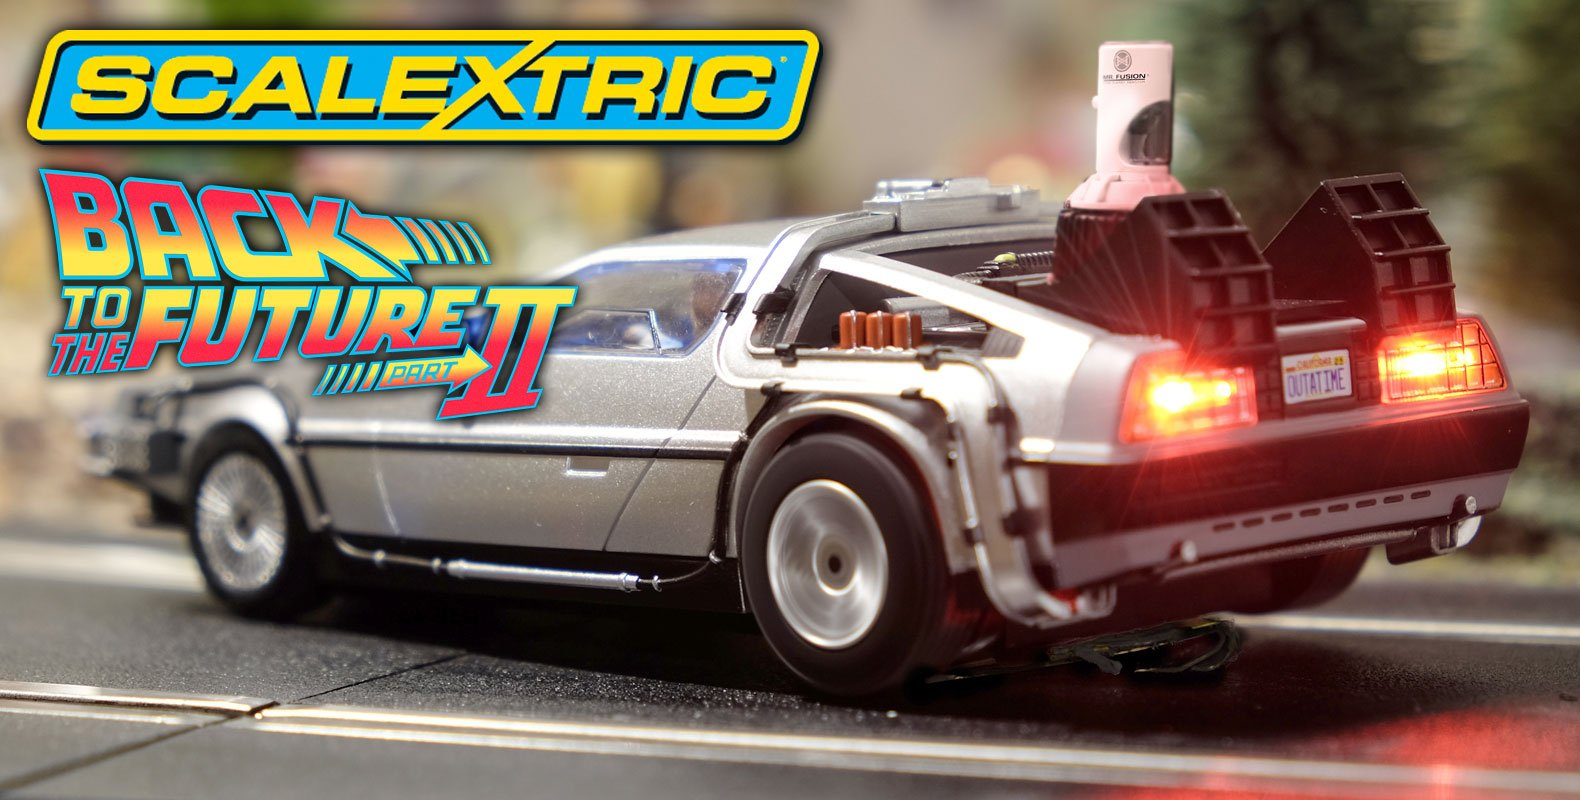 scalextric back to the future 2 10.22.20